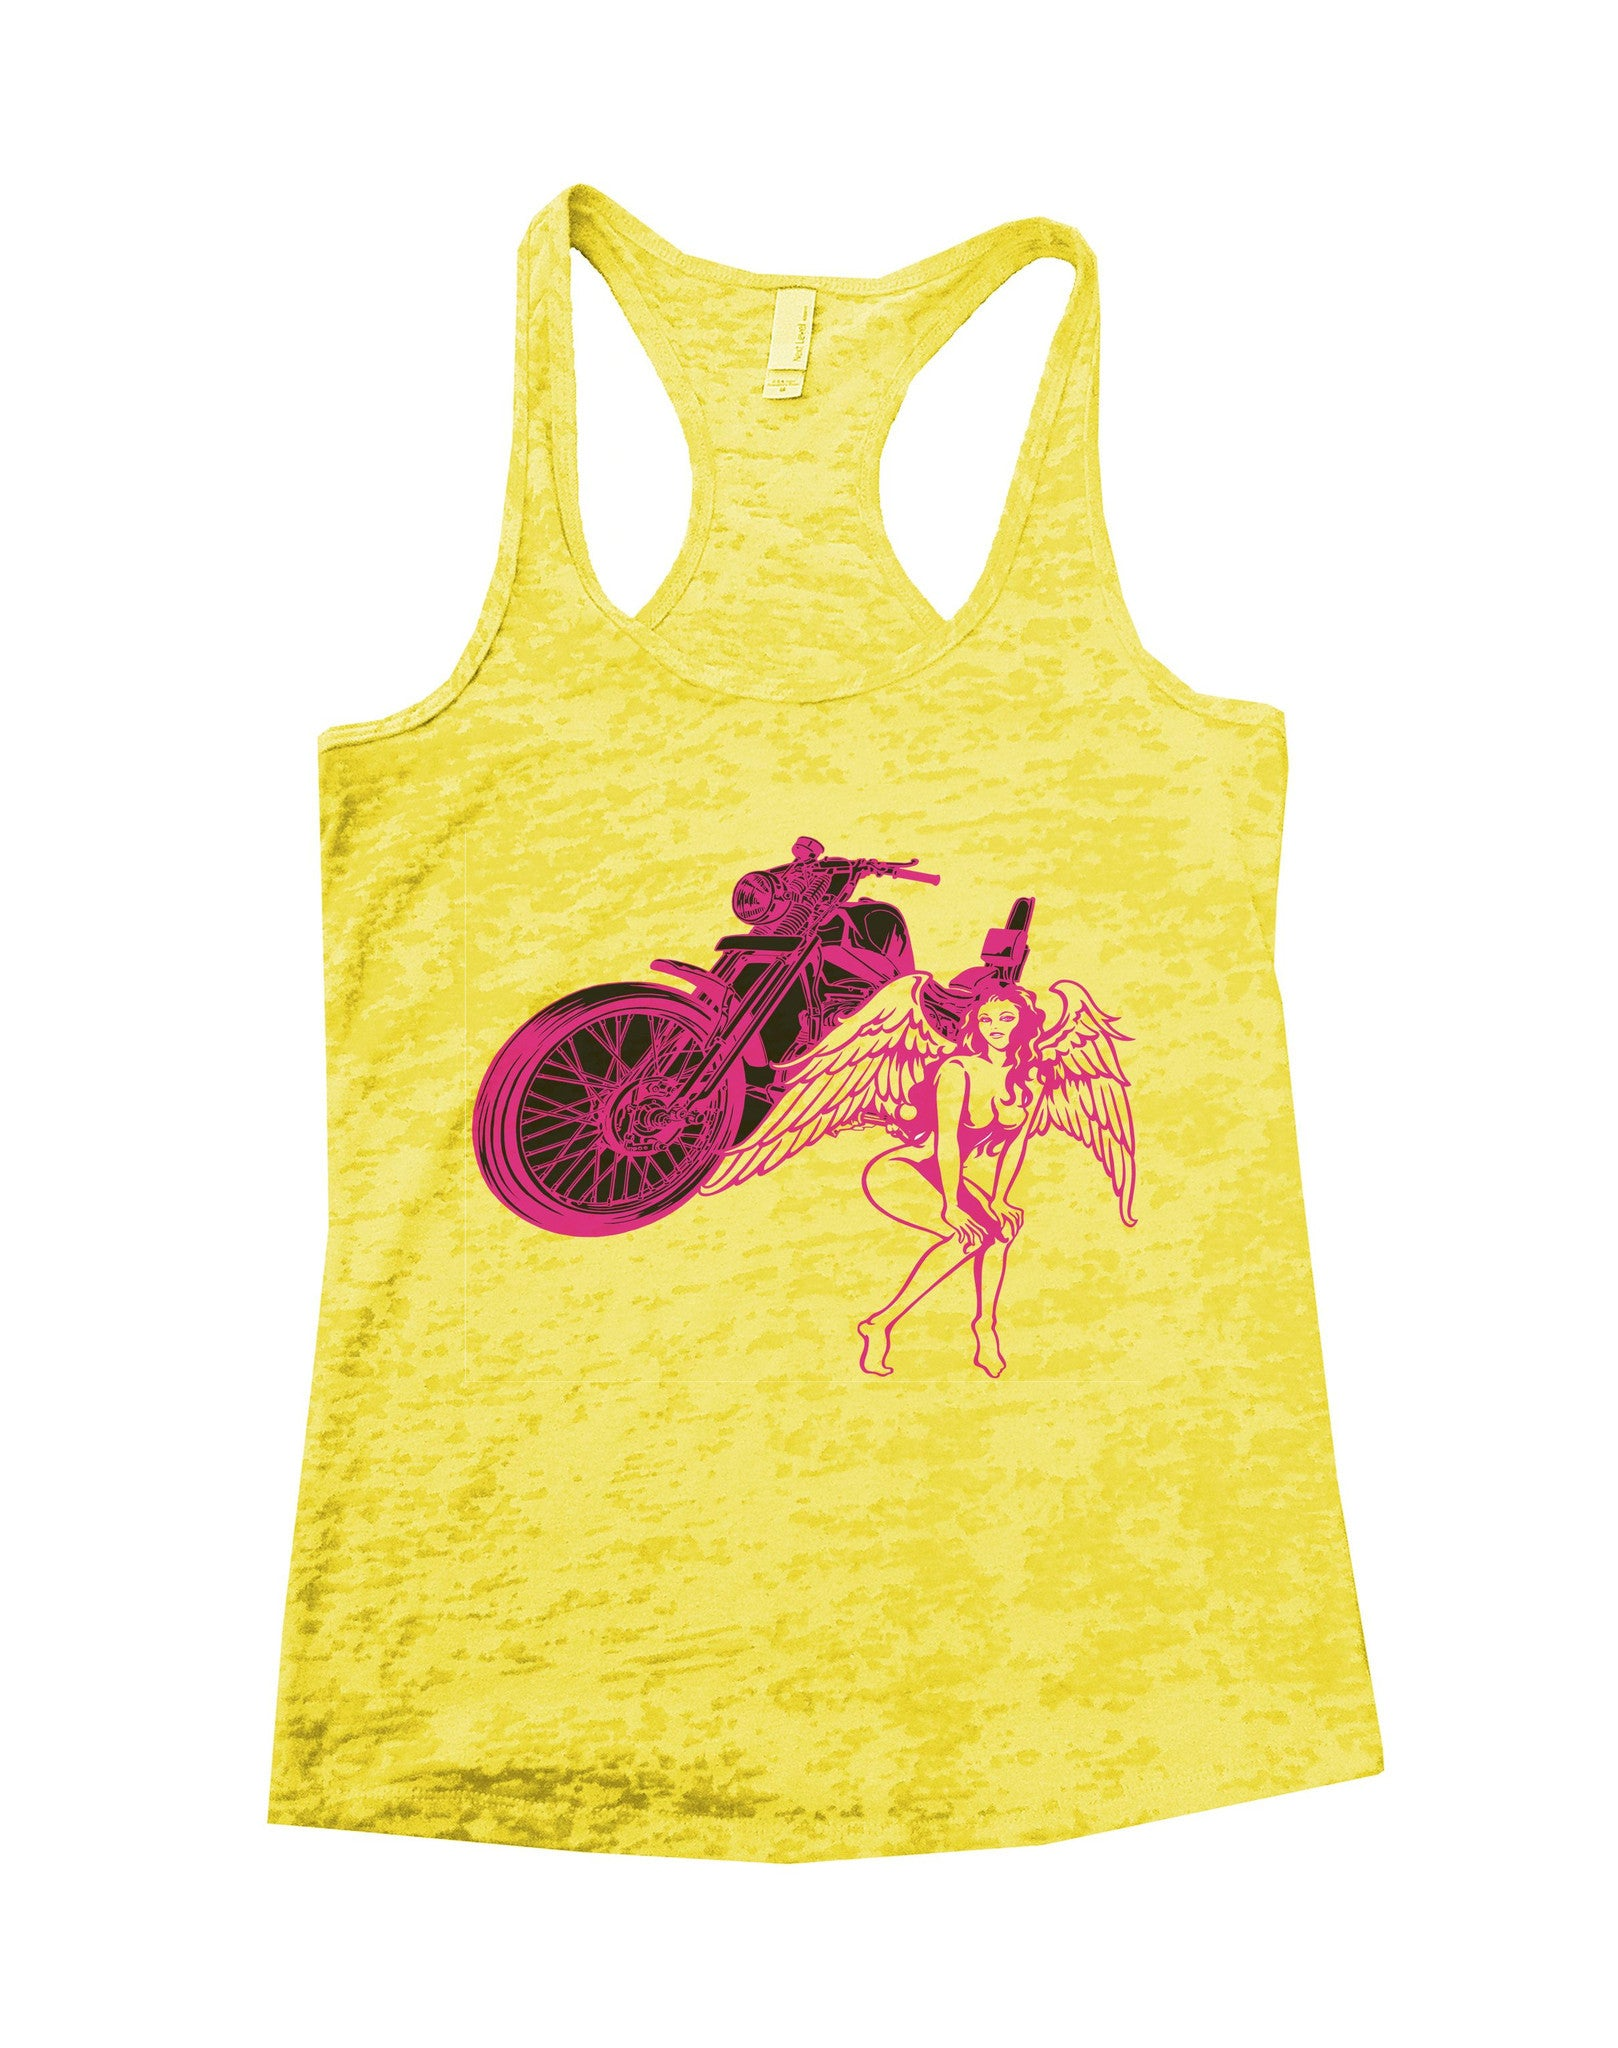 Bike And Women Burnout Tank Top By BurnoutTankTops.com - 700 - Funny Shirts Tank Tops Burnouts and Triblends  - 4